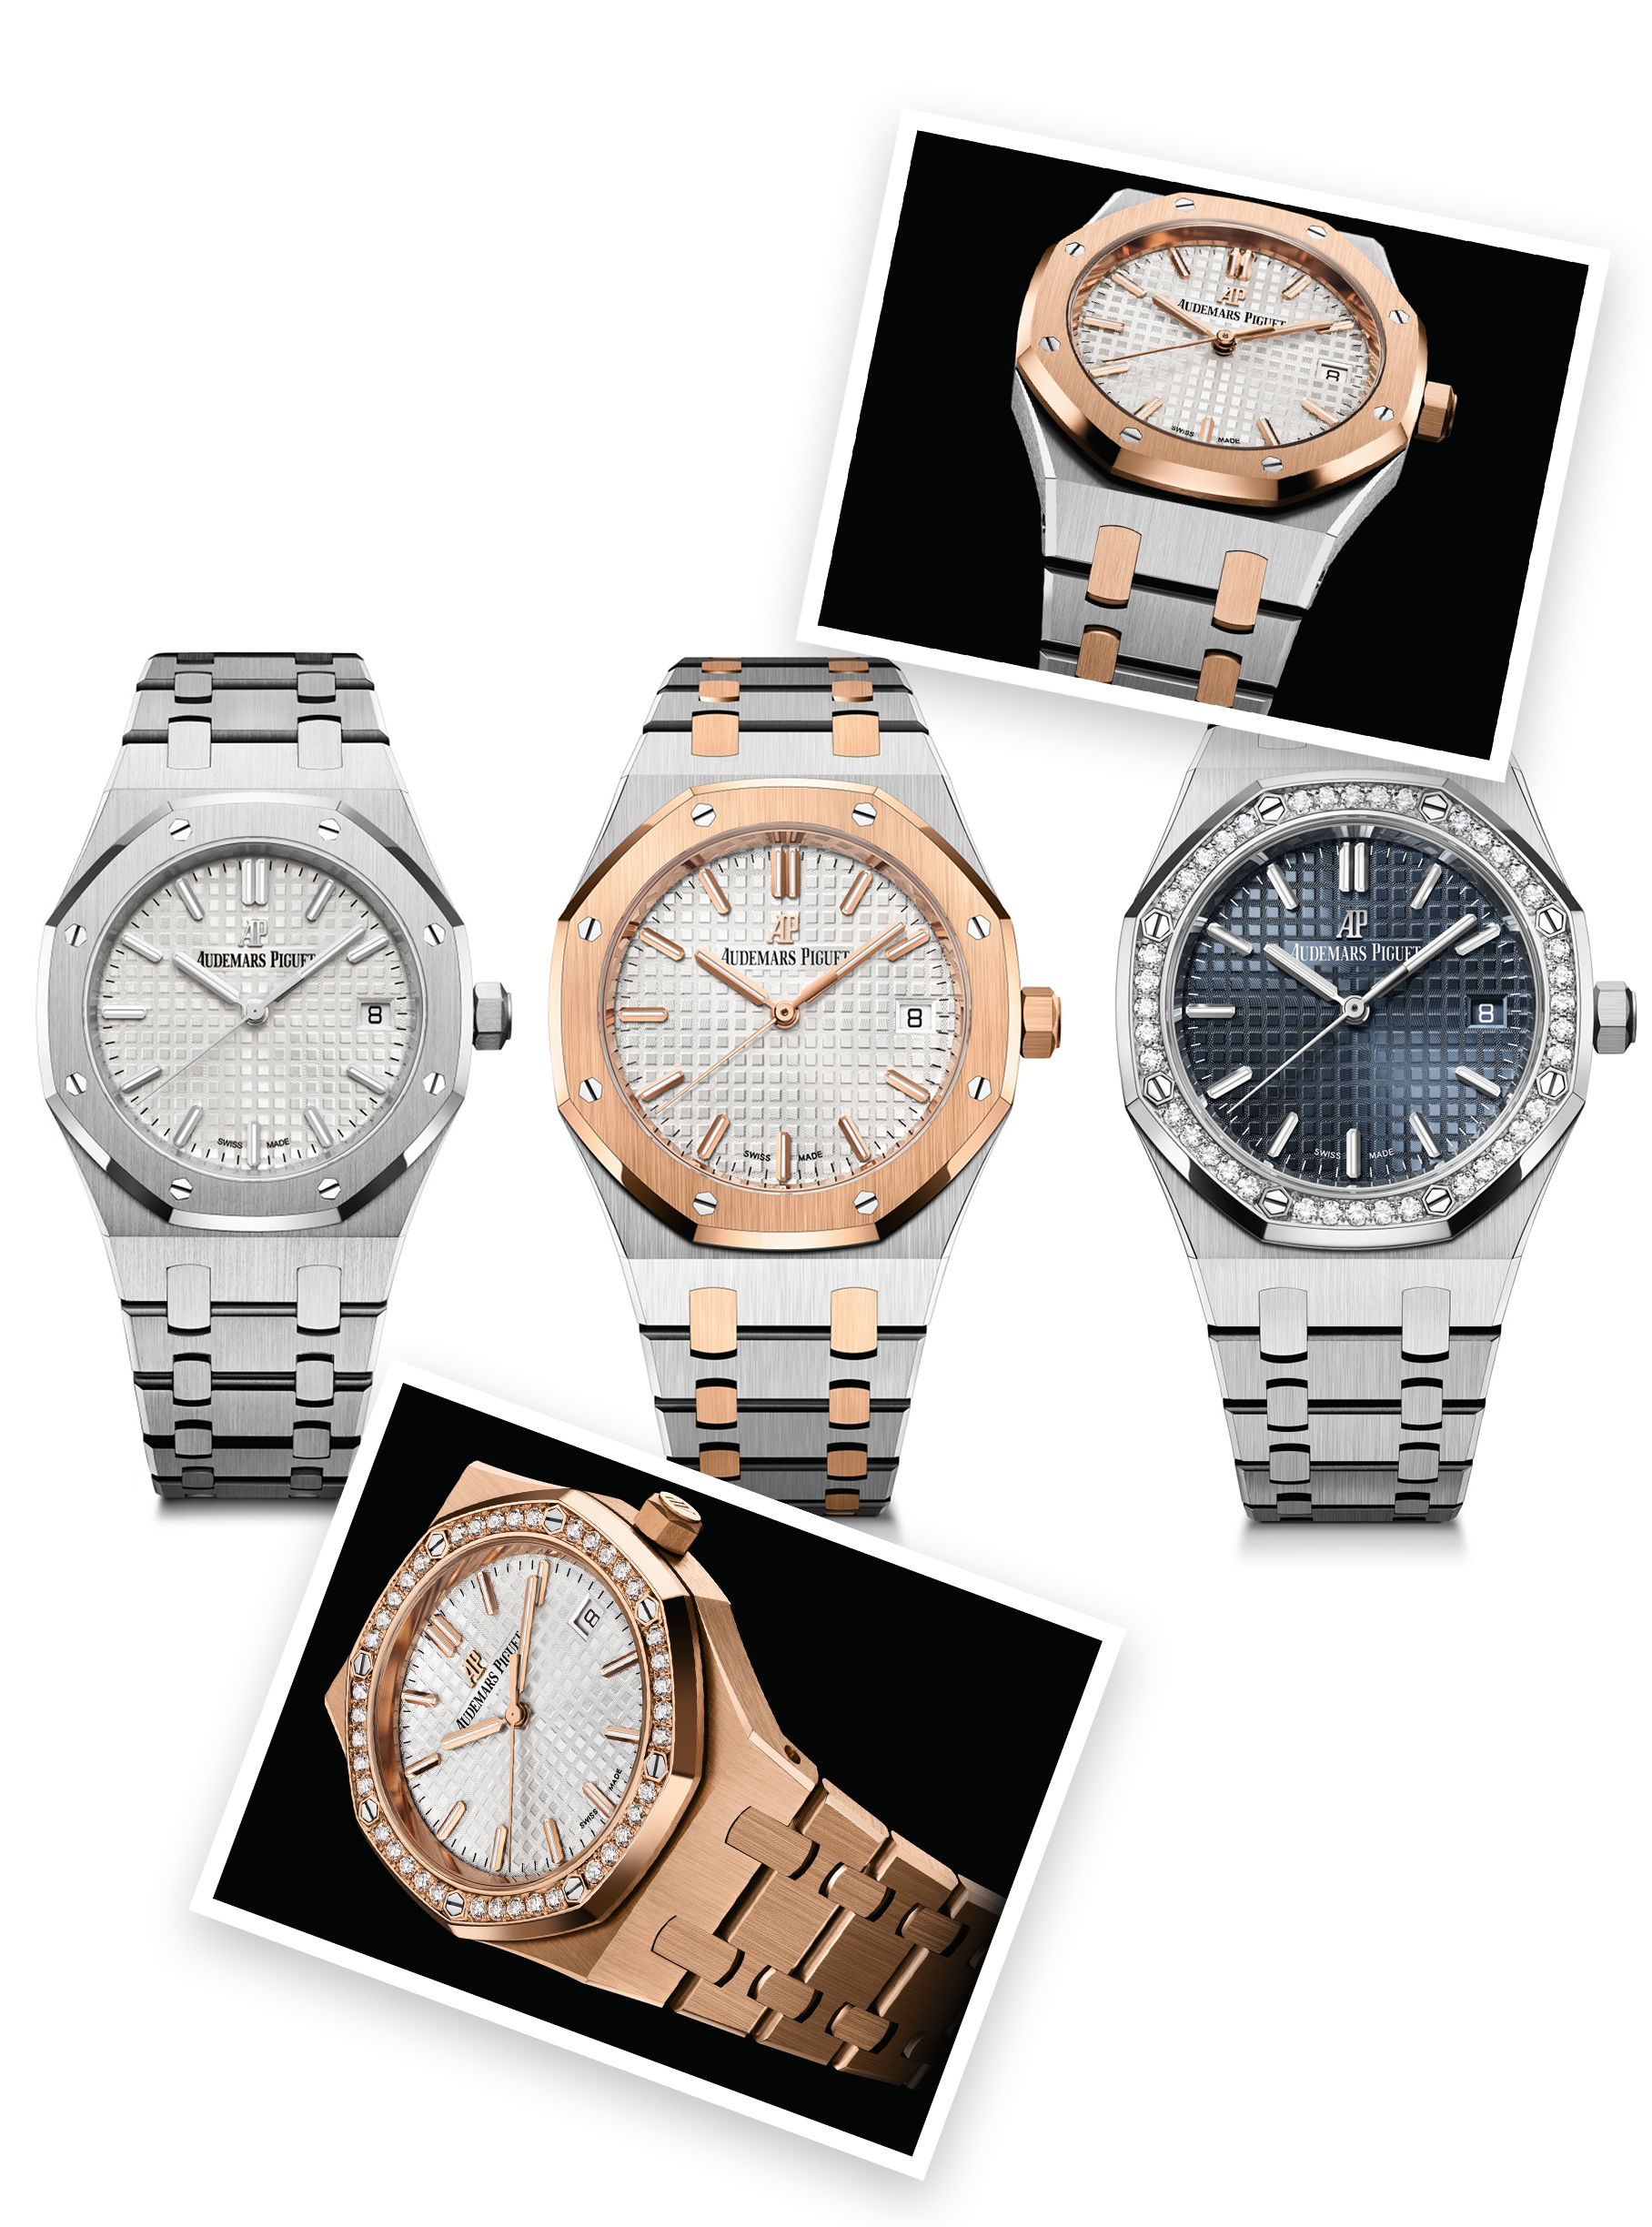 hpv.595_AudemarsPiguet_watches_01 2